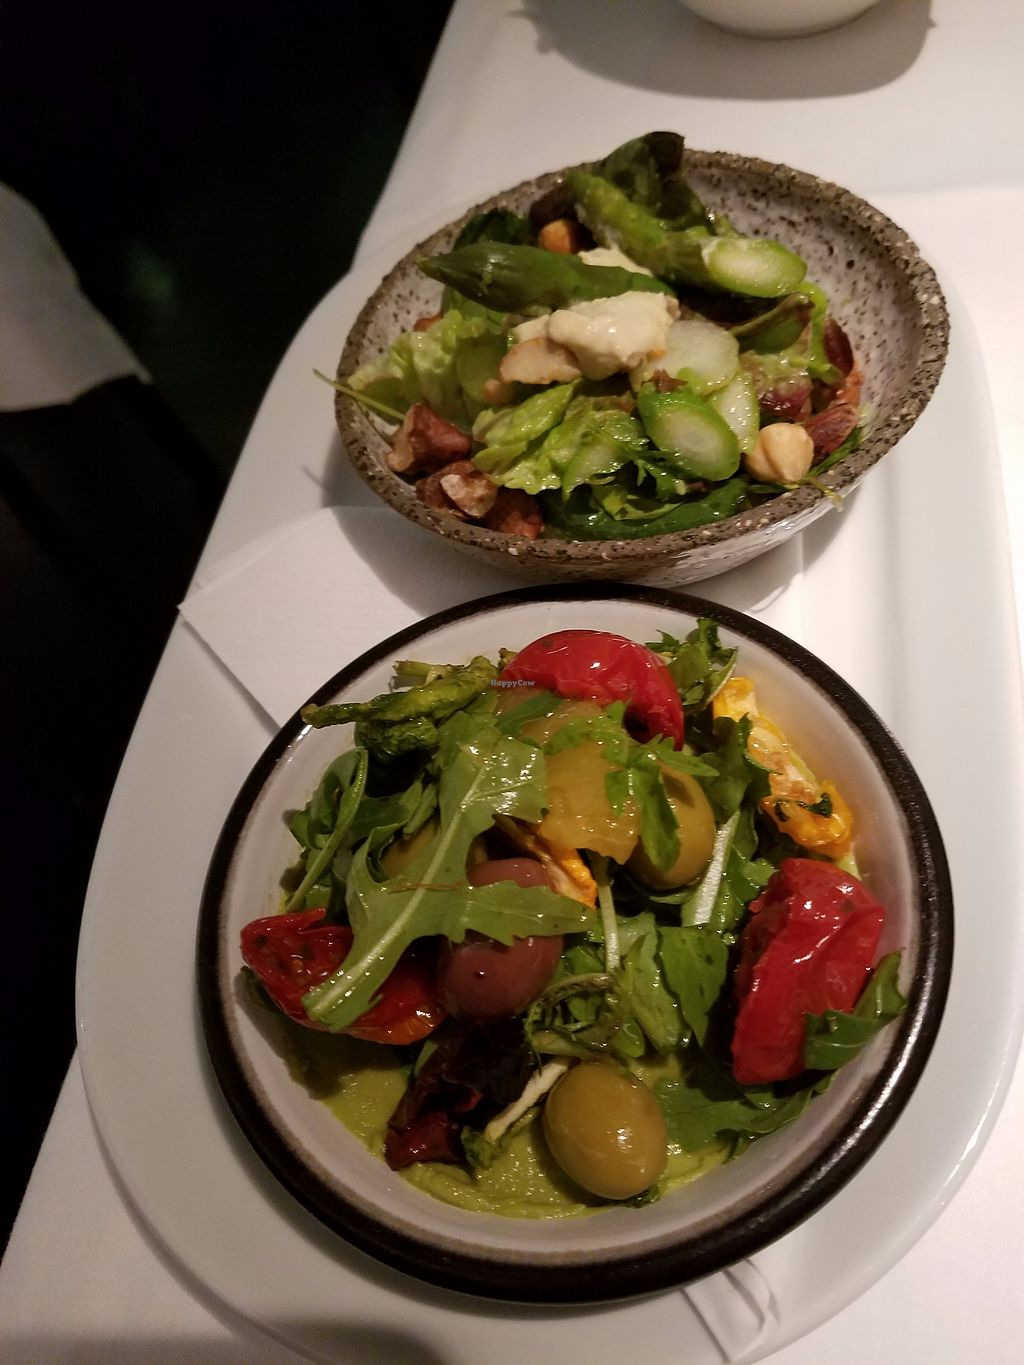 "Photo of Peploe's Wine Bistro  by <a href=""/members/profile/Katyathevegan"">Katyathevegan</a> <br/>Sides that came with entree- vegan- salads <br/> September 1, 2017  - <a href='/contact/abuse/image/99114/299556'>Report</a>"